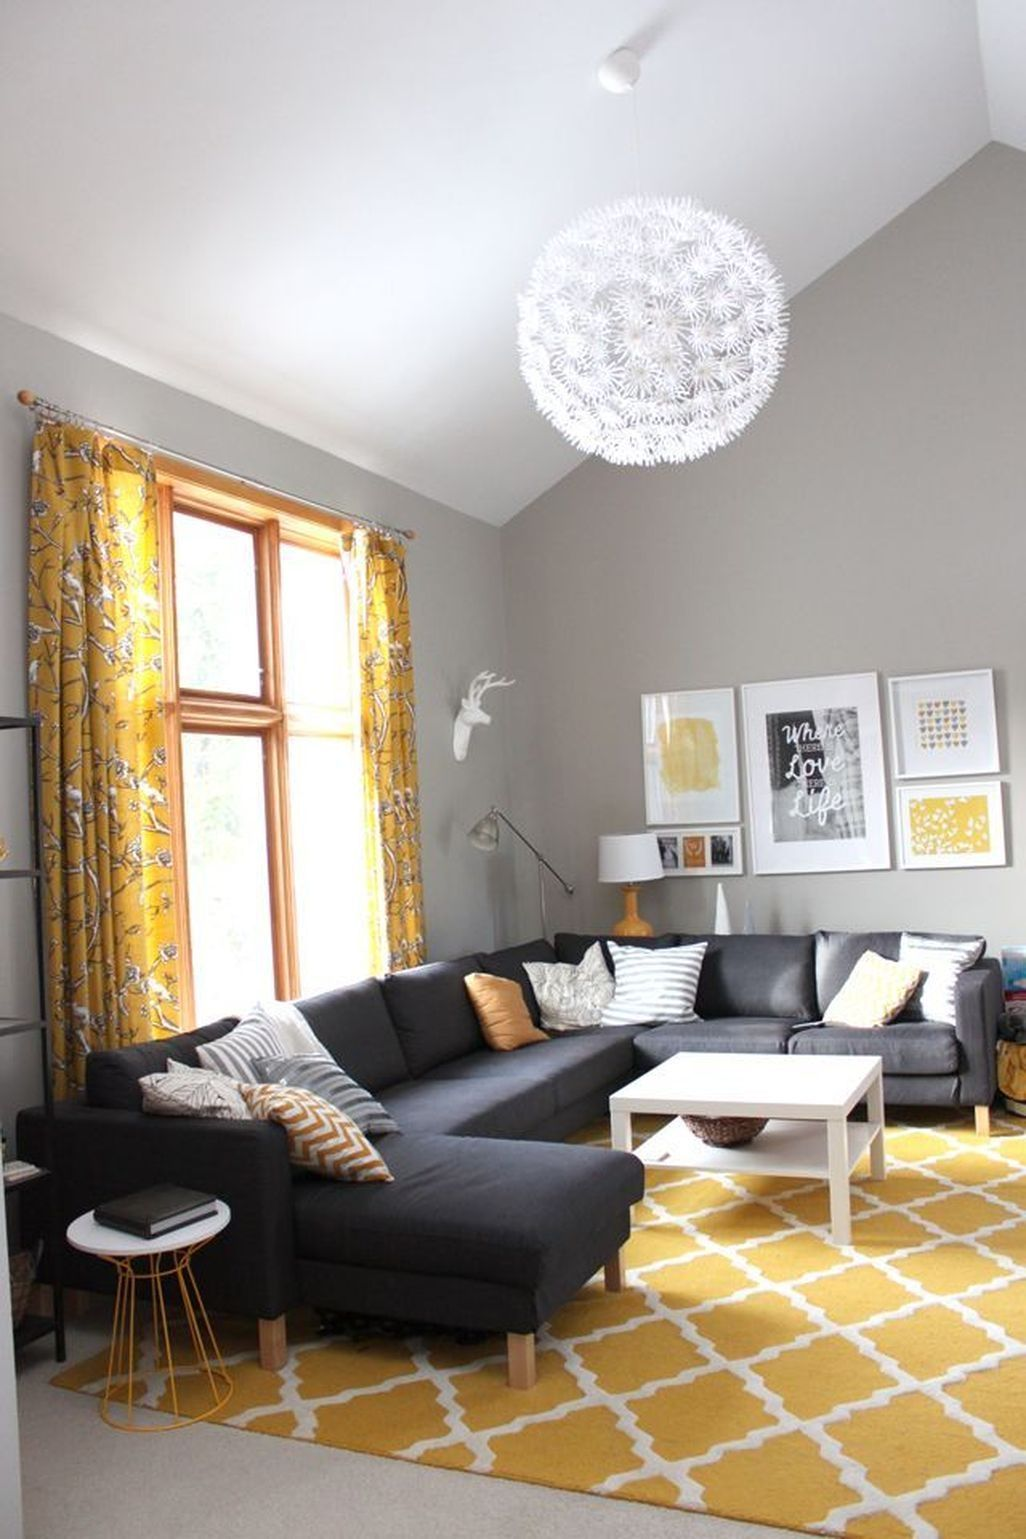 40 Wonderful Ideas For Decorating The Living Room With Ye